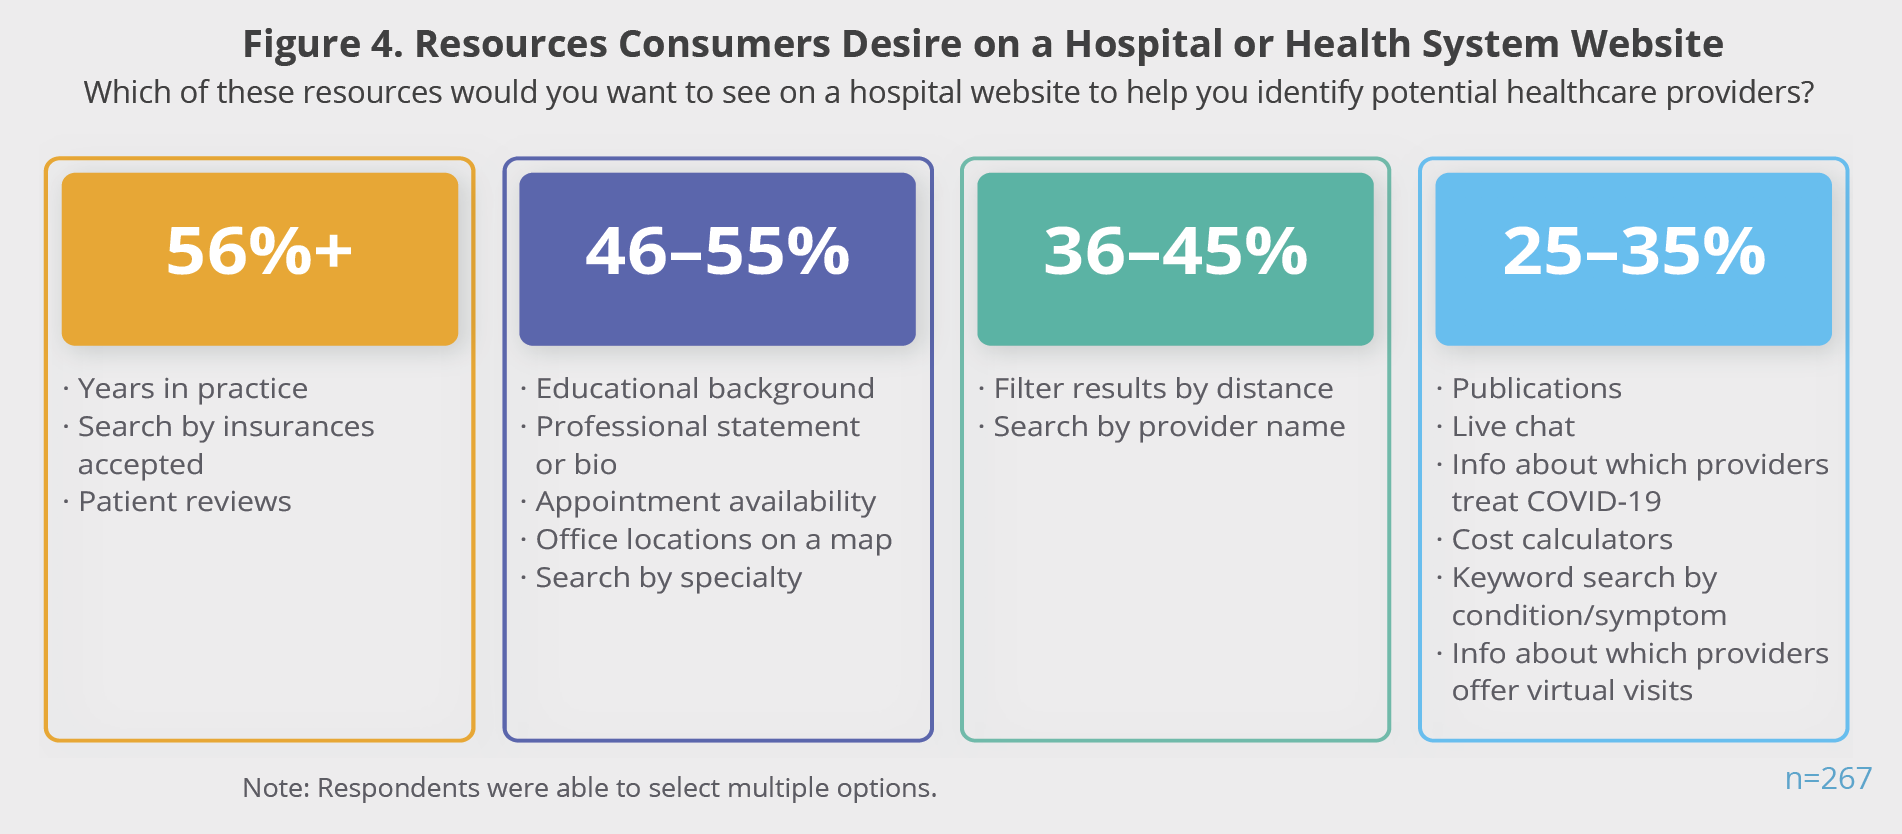 Figure 4. Resources Consumers Desire on a Hospital or Health System Website